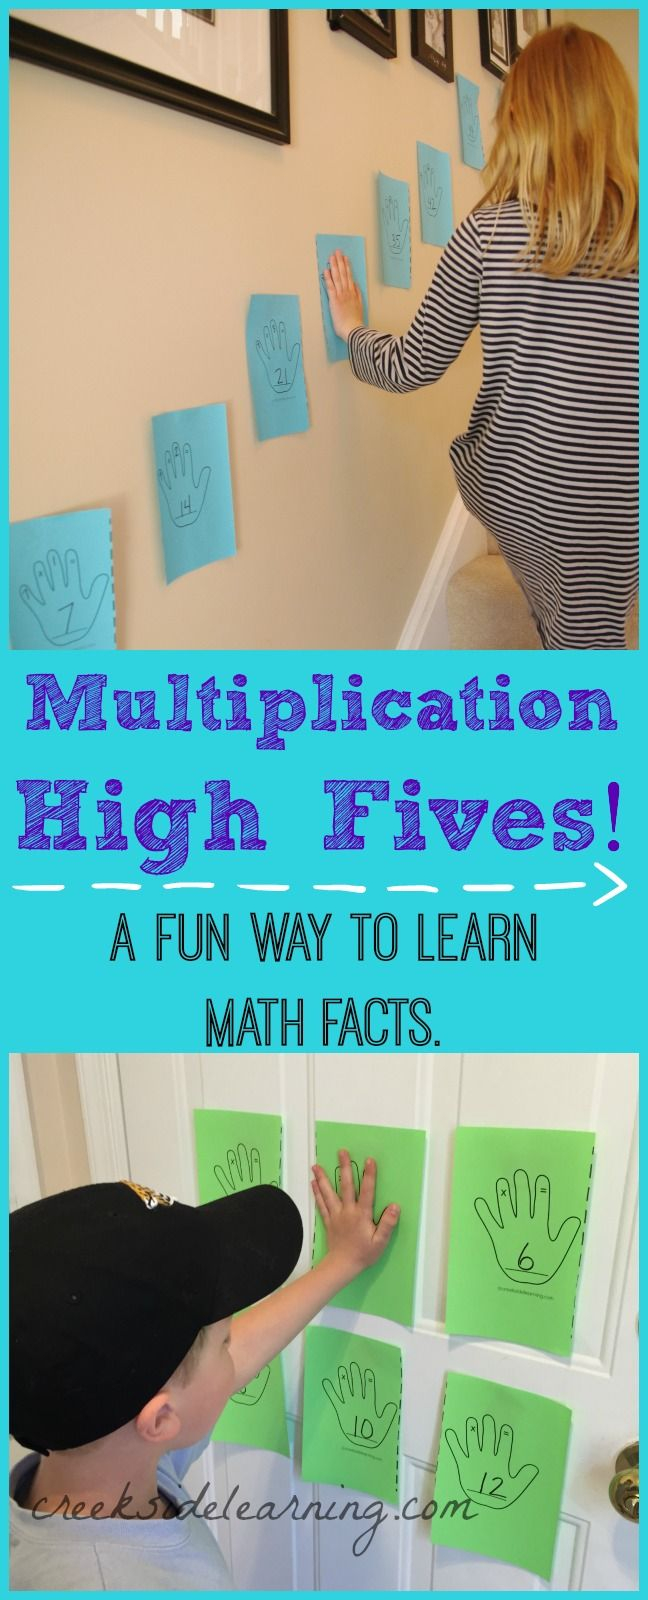 Multiplication Math Games | Study.com